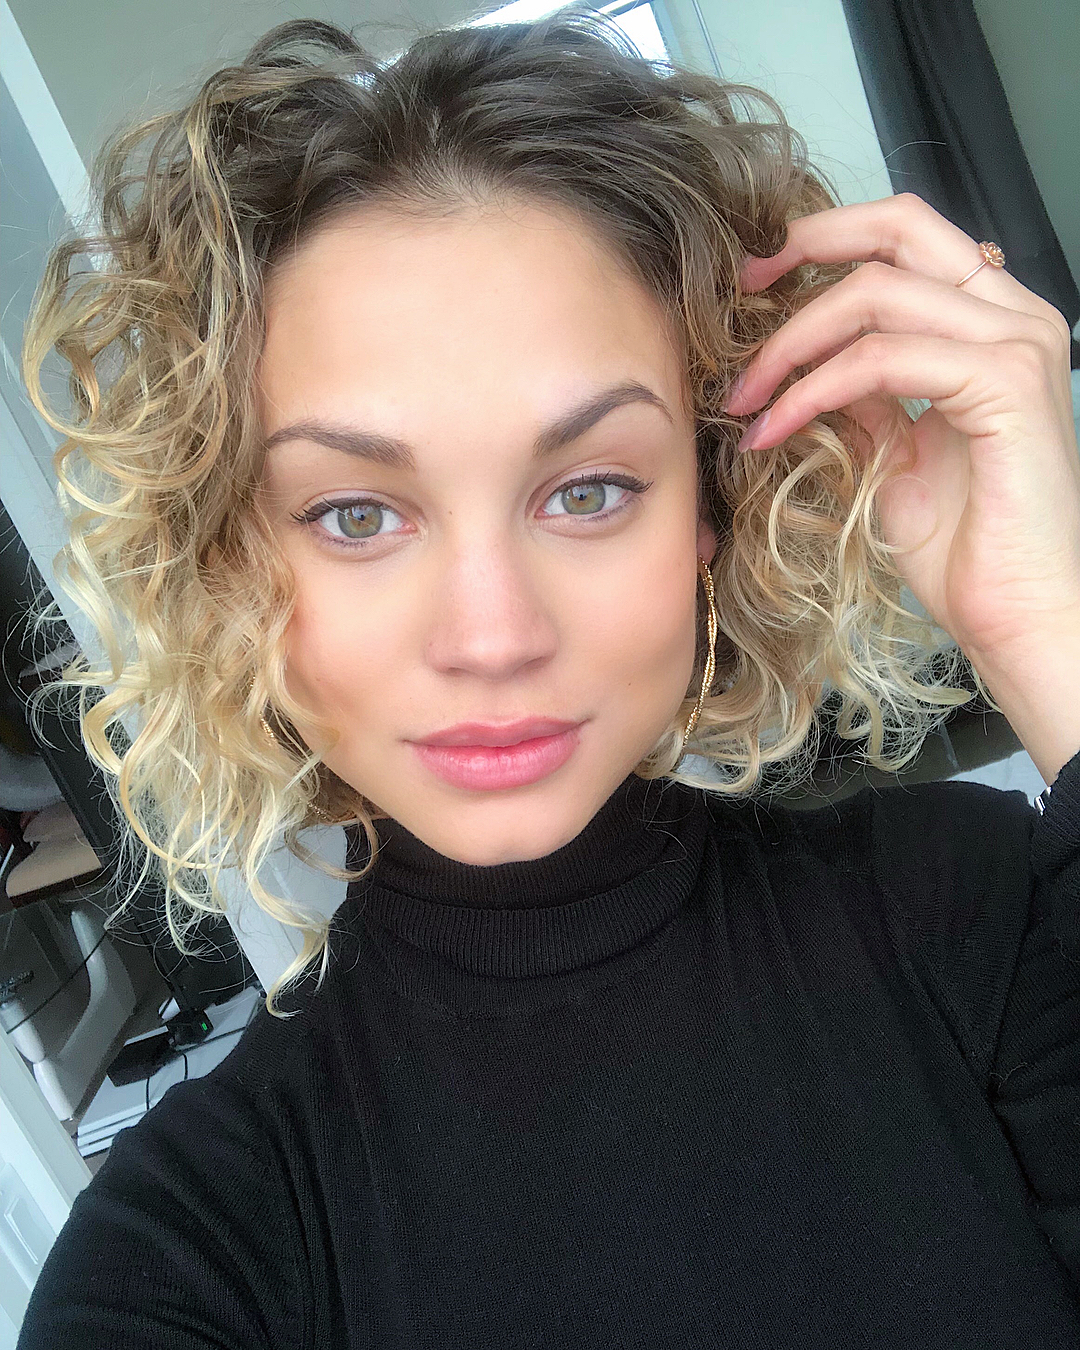 Topless Selfie Stephanie Rose Bertram naked photo 2017